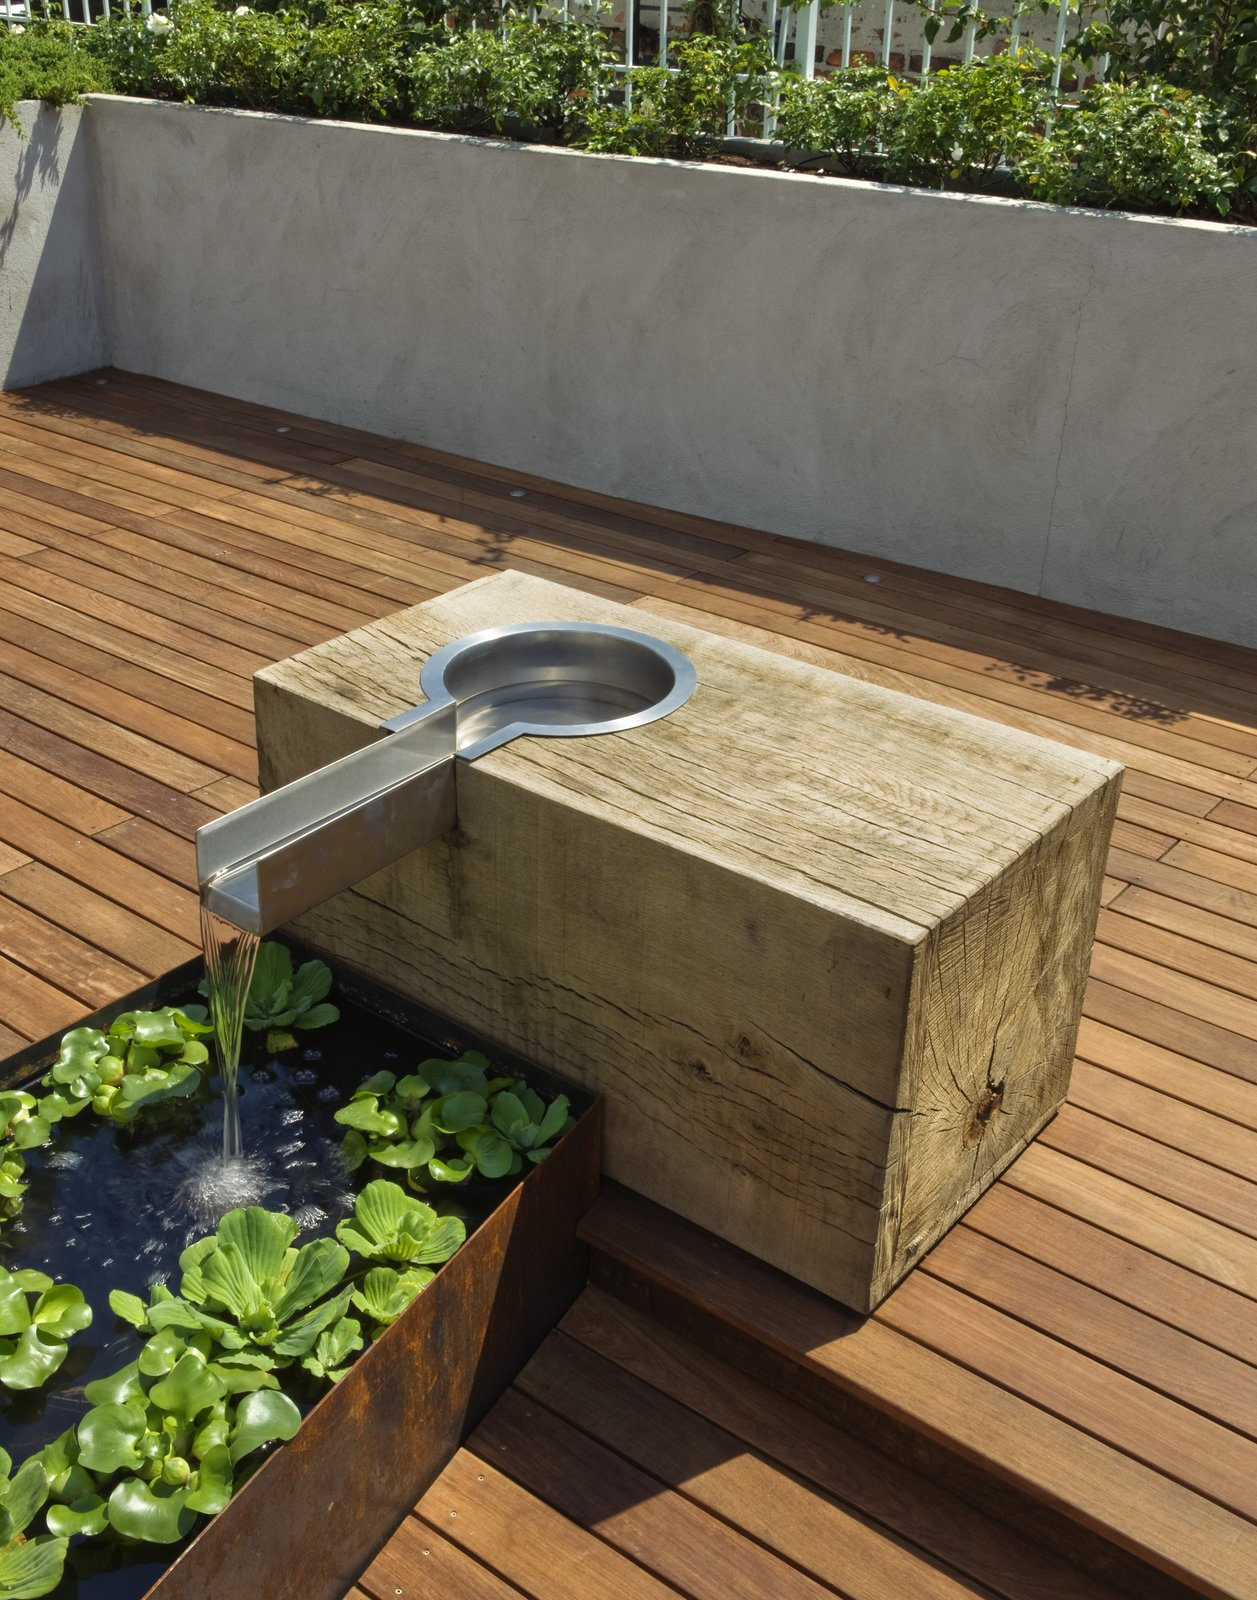 The oak block was sourced from a mill outside of Philadelphia.  The block was rough sawn and left unfinished to weather and develop a patina.  The lined water trough is fabricated from Cor-Ten steel.